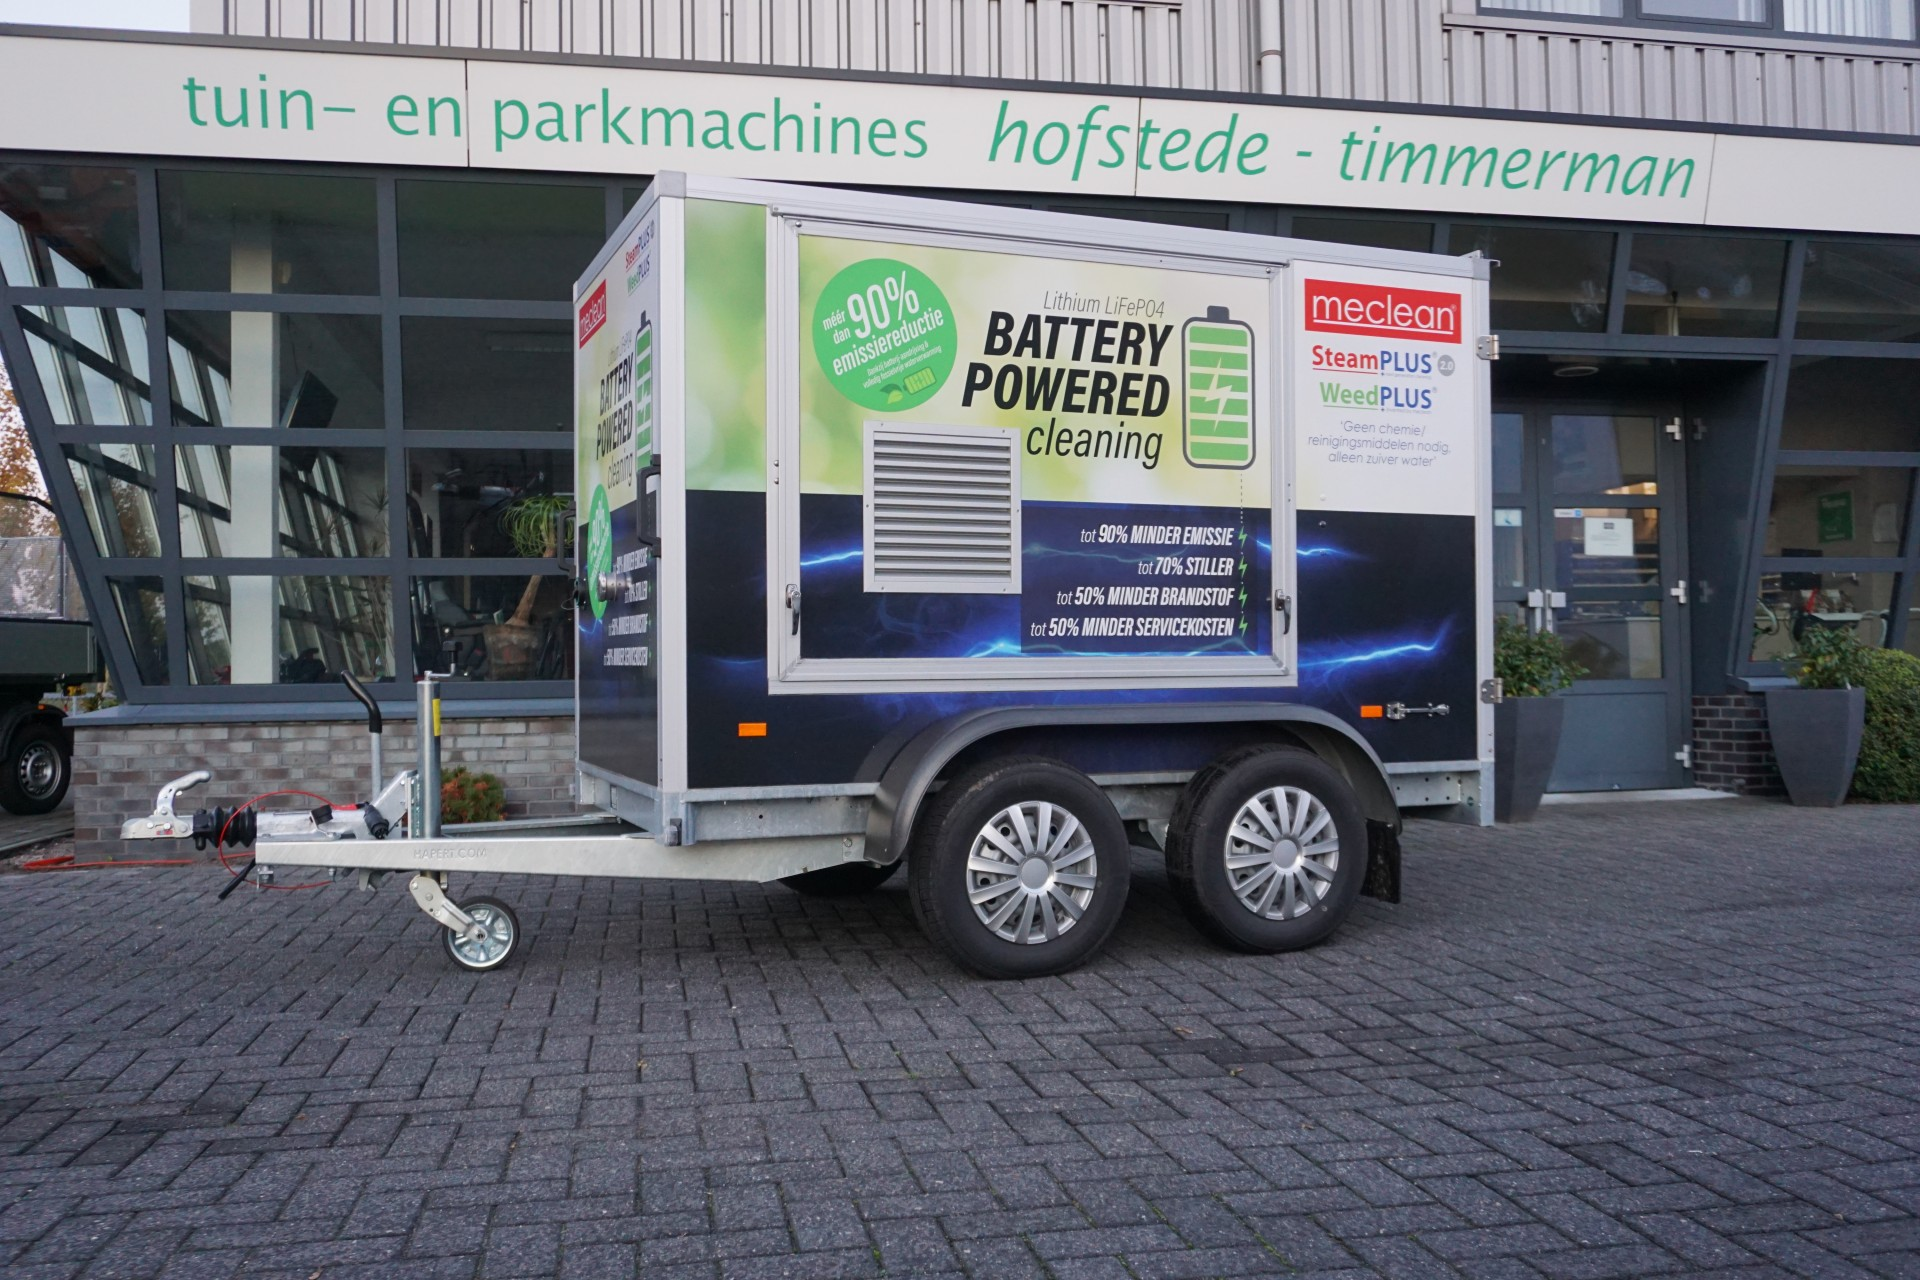 Meclean Battery powered